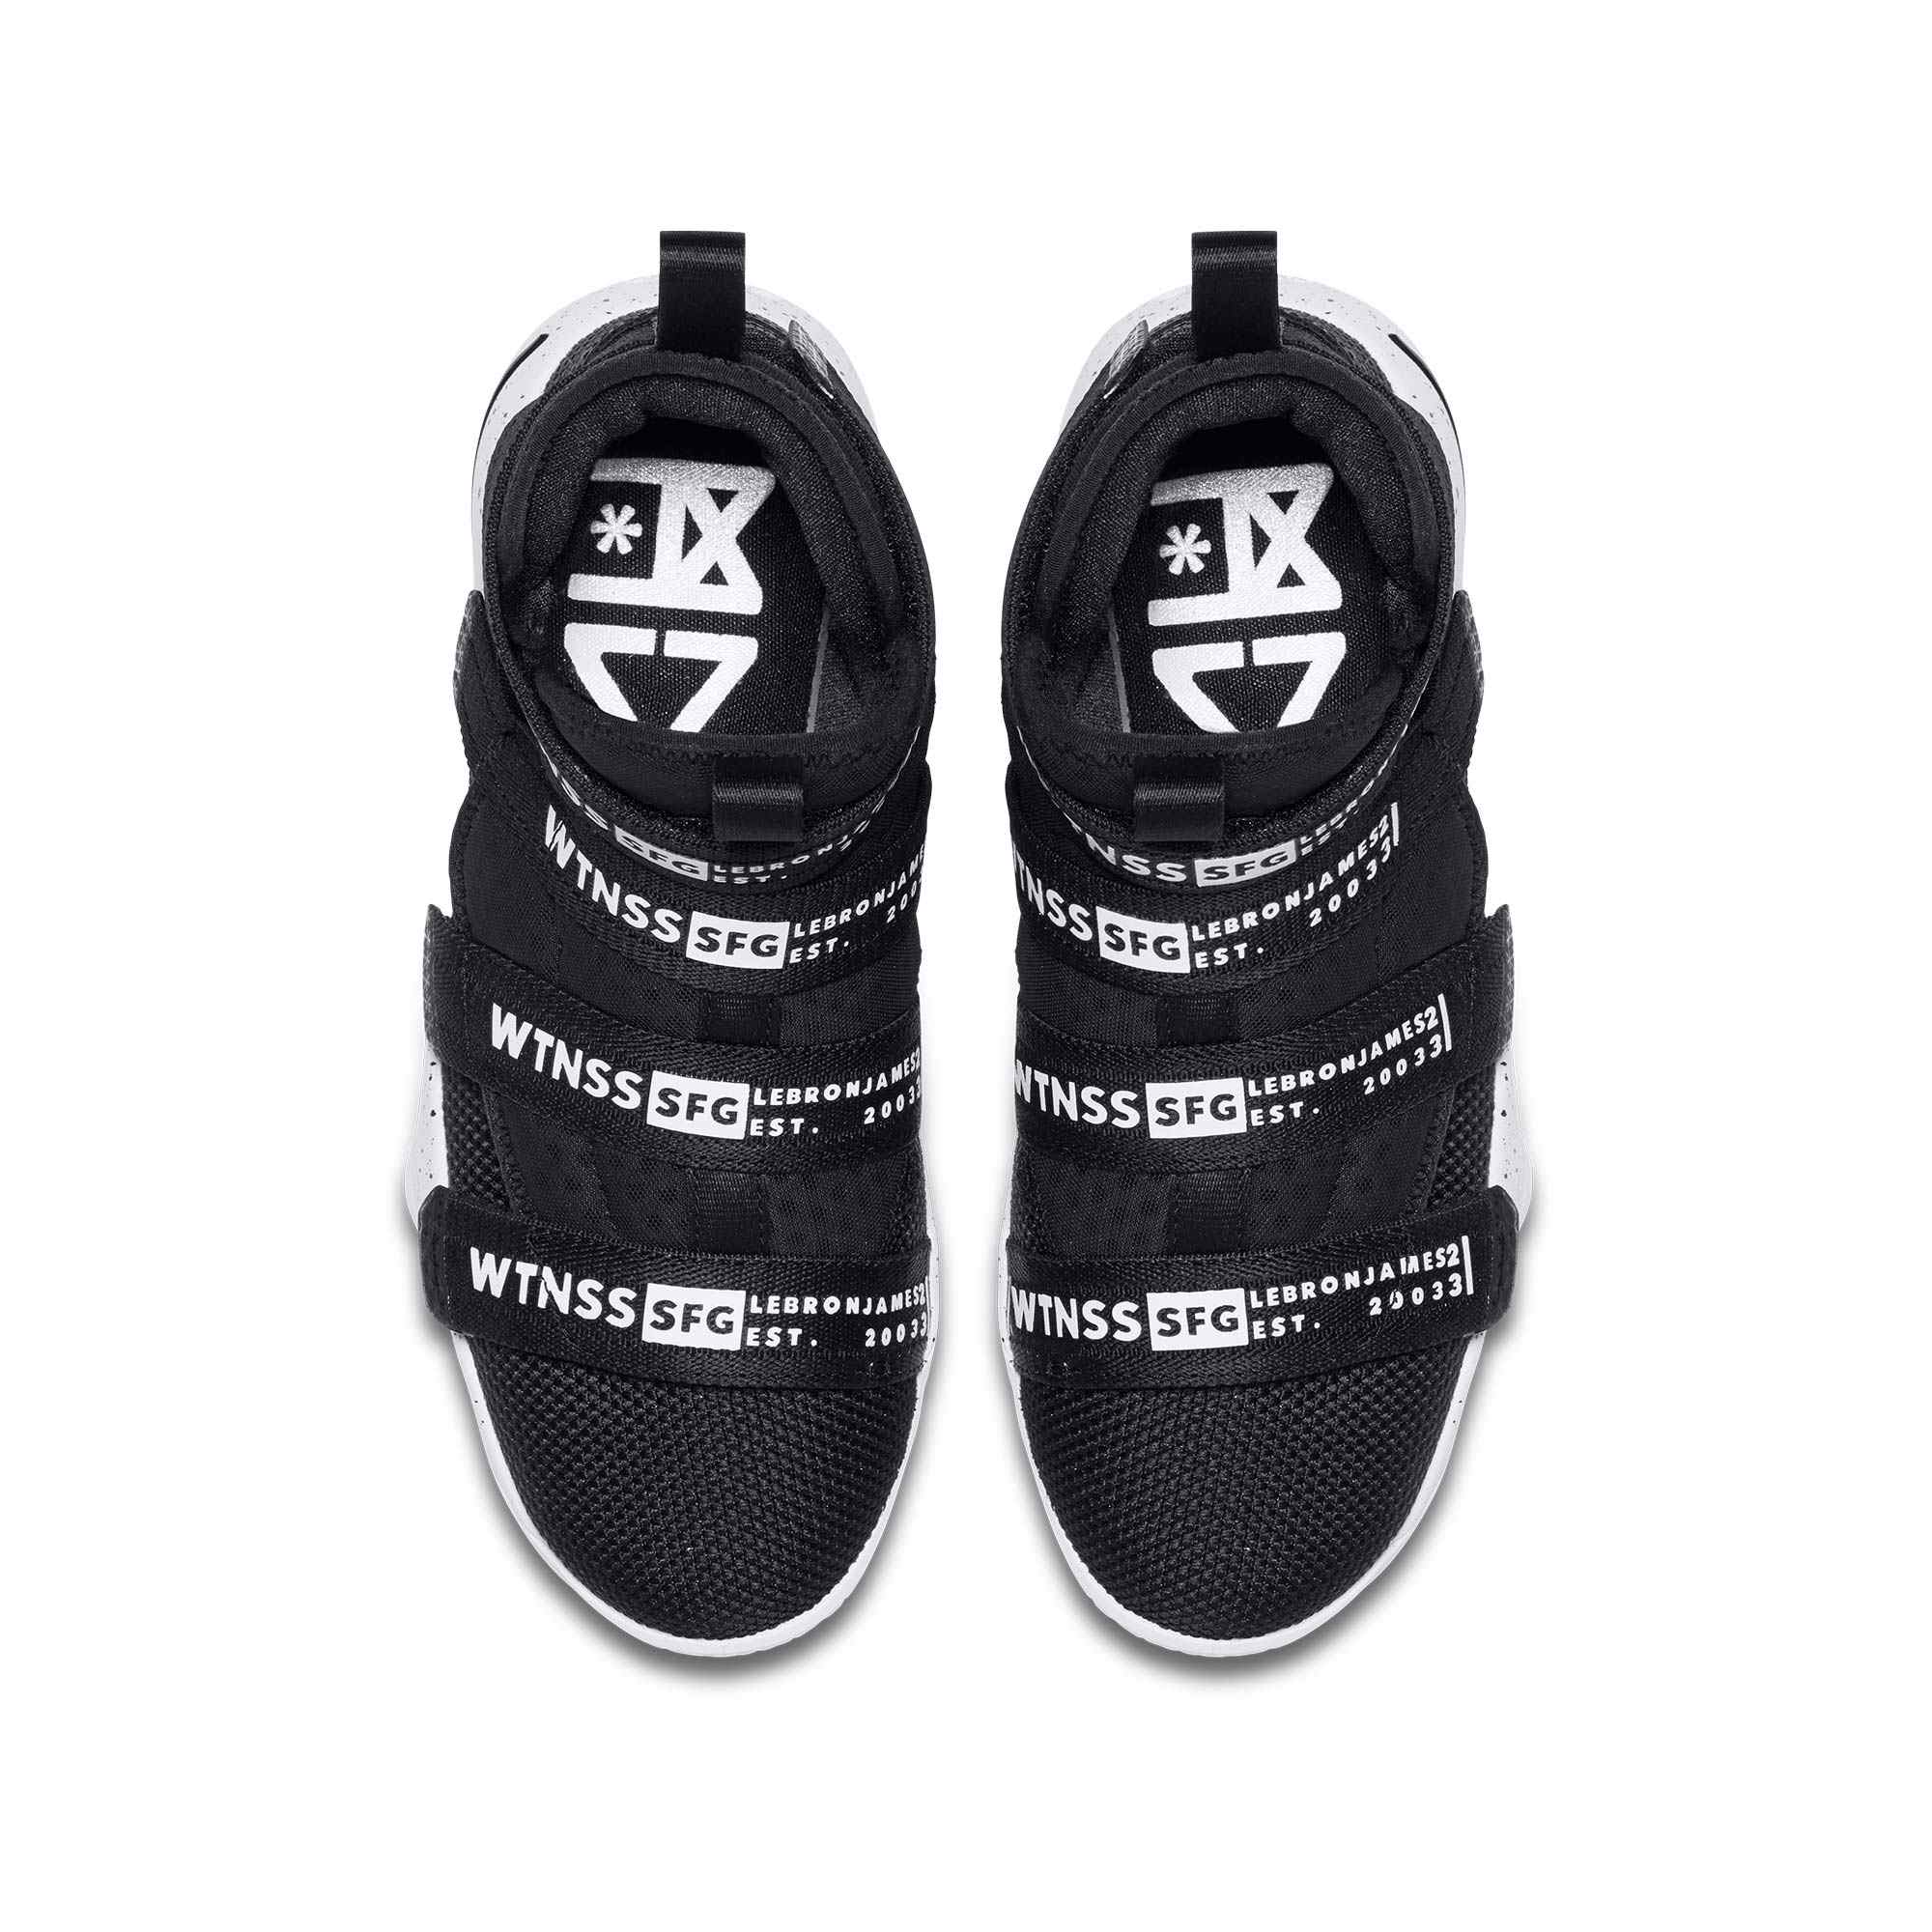 0b90e7629dc ... NIKE LEBRON SOLDIER XI FLYEASE (GS) KIDS New Arrival Original  Breathable Anti-Slippery ...